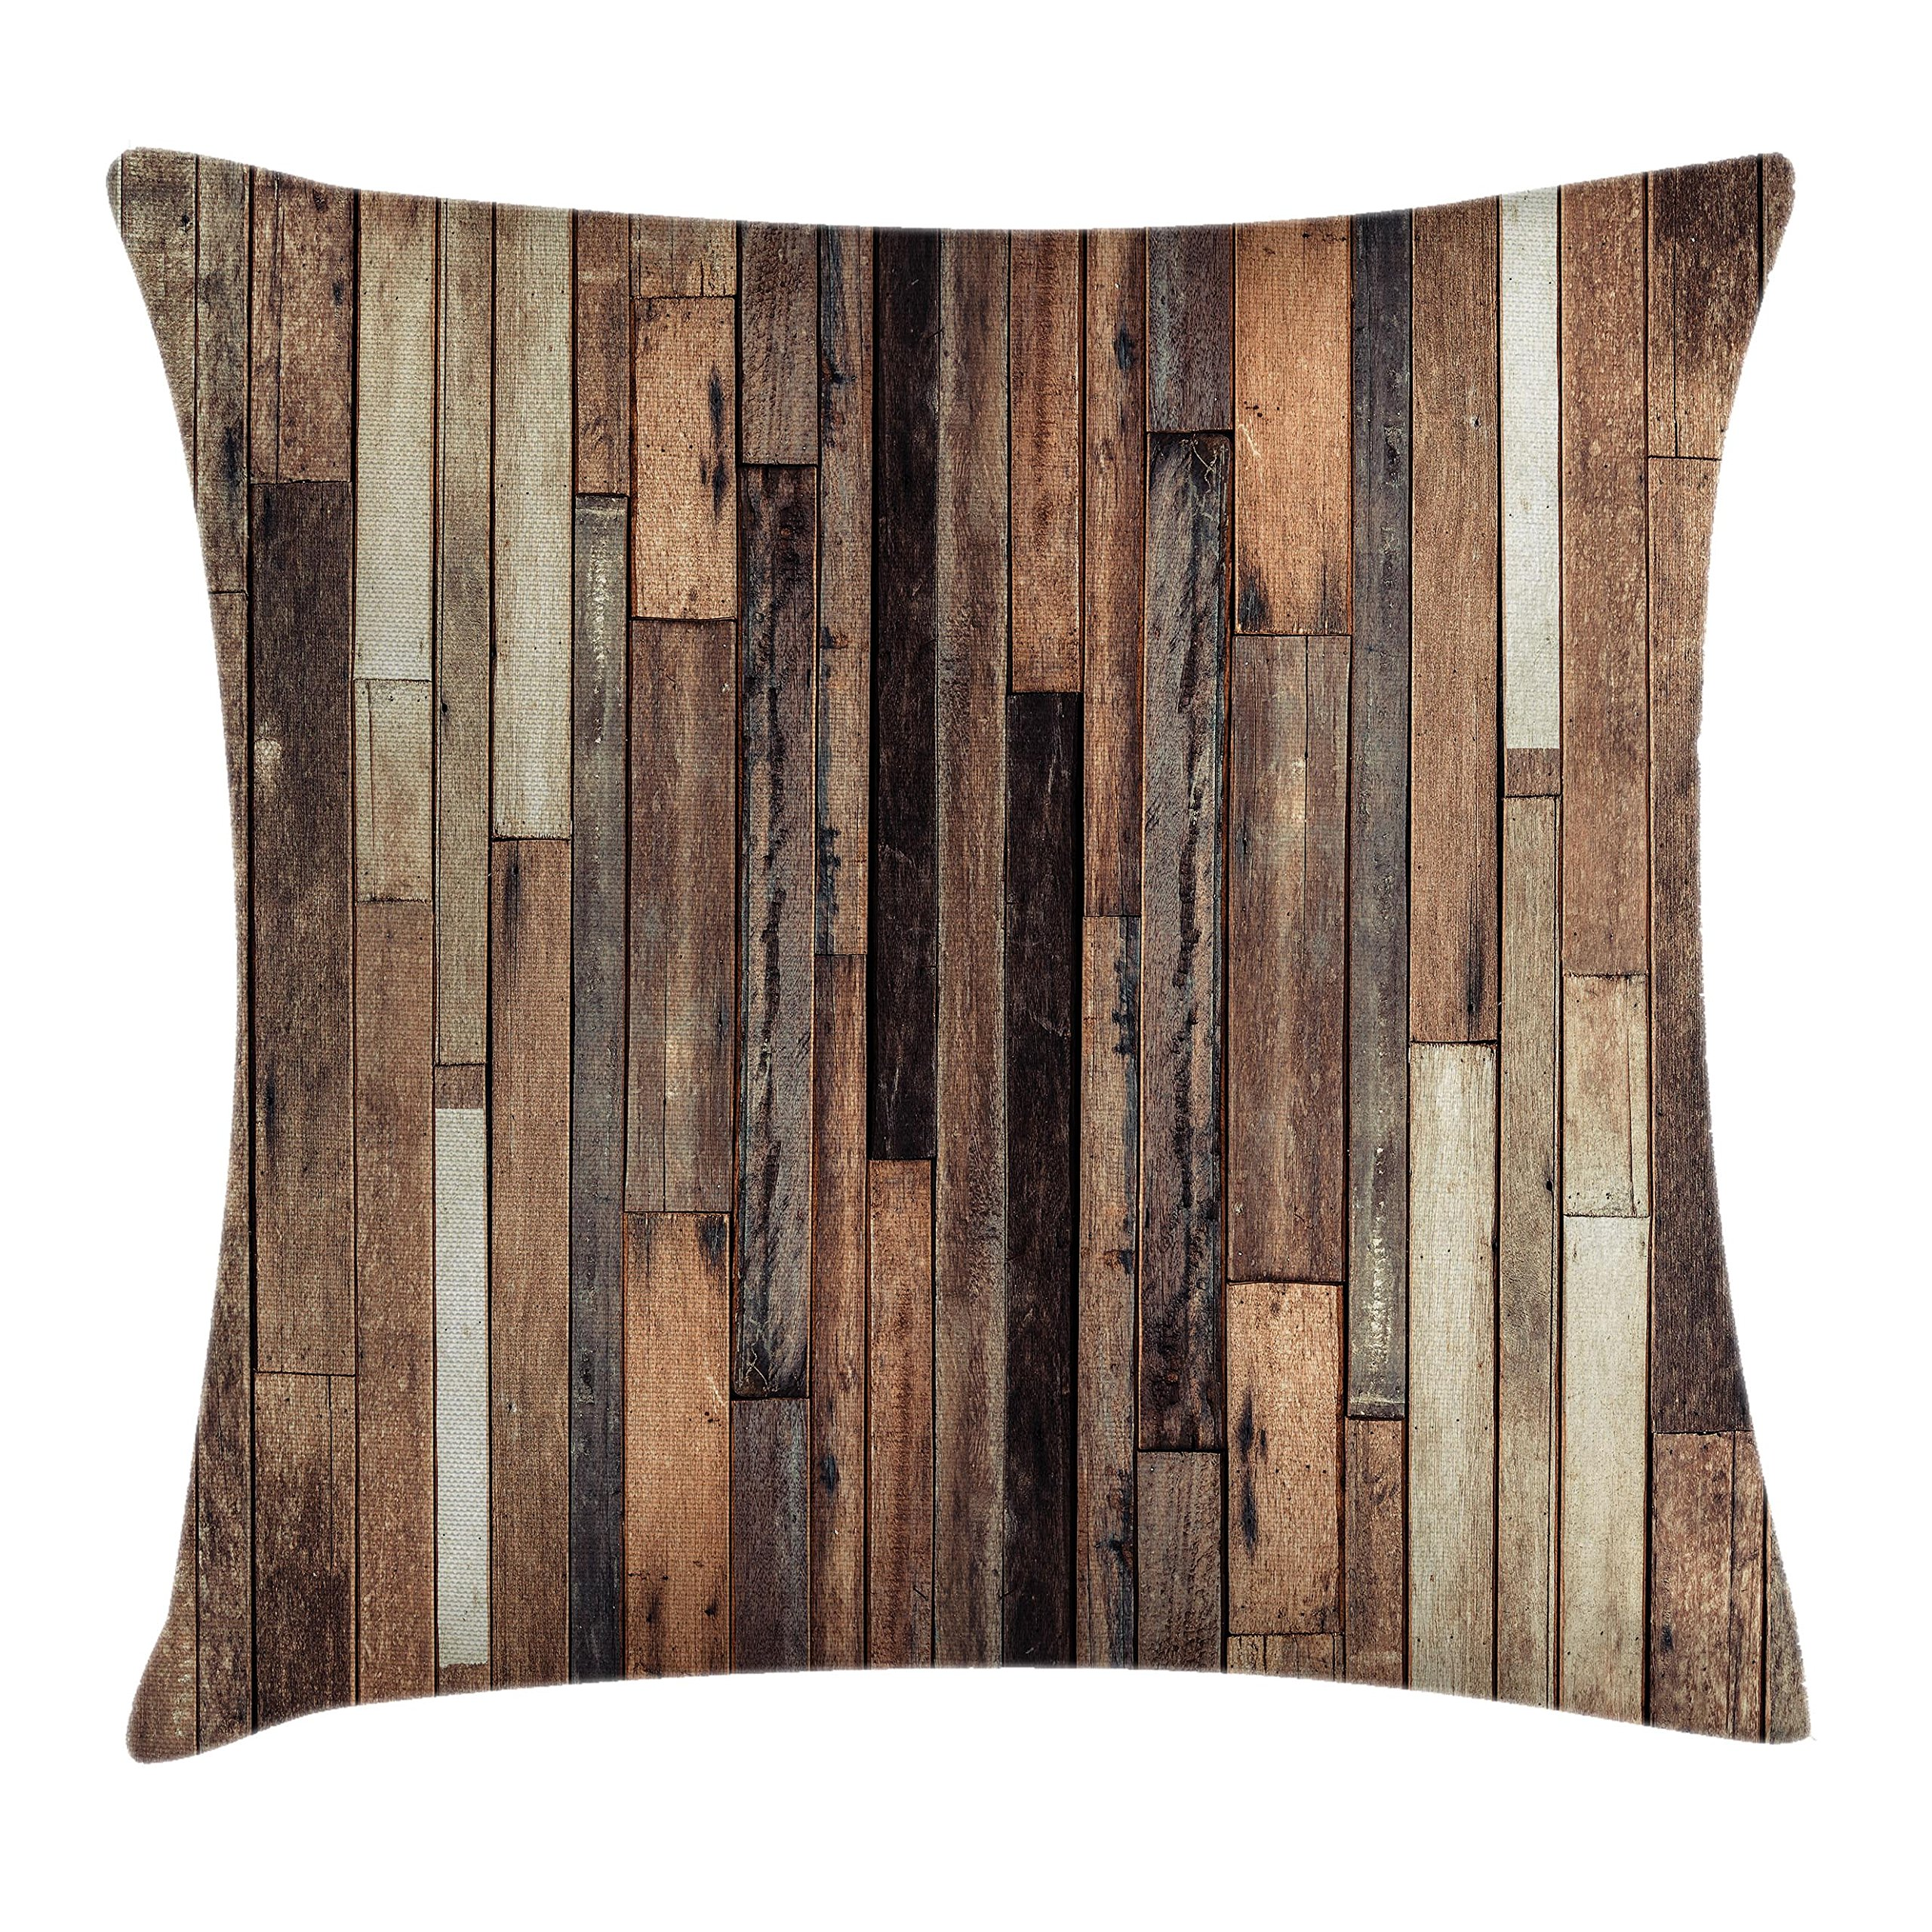 Ambesonne Wooden Throw Pillow Cushion Cover, Brown Old Hardwood Floor Plank Grunge Lodge Garage Loft Natural Rural Graphic Artsy Print, Decorative Square Accent Pillow Case, 24 X 24 Inches, Brown